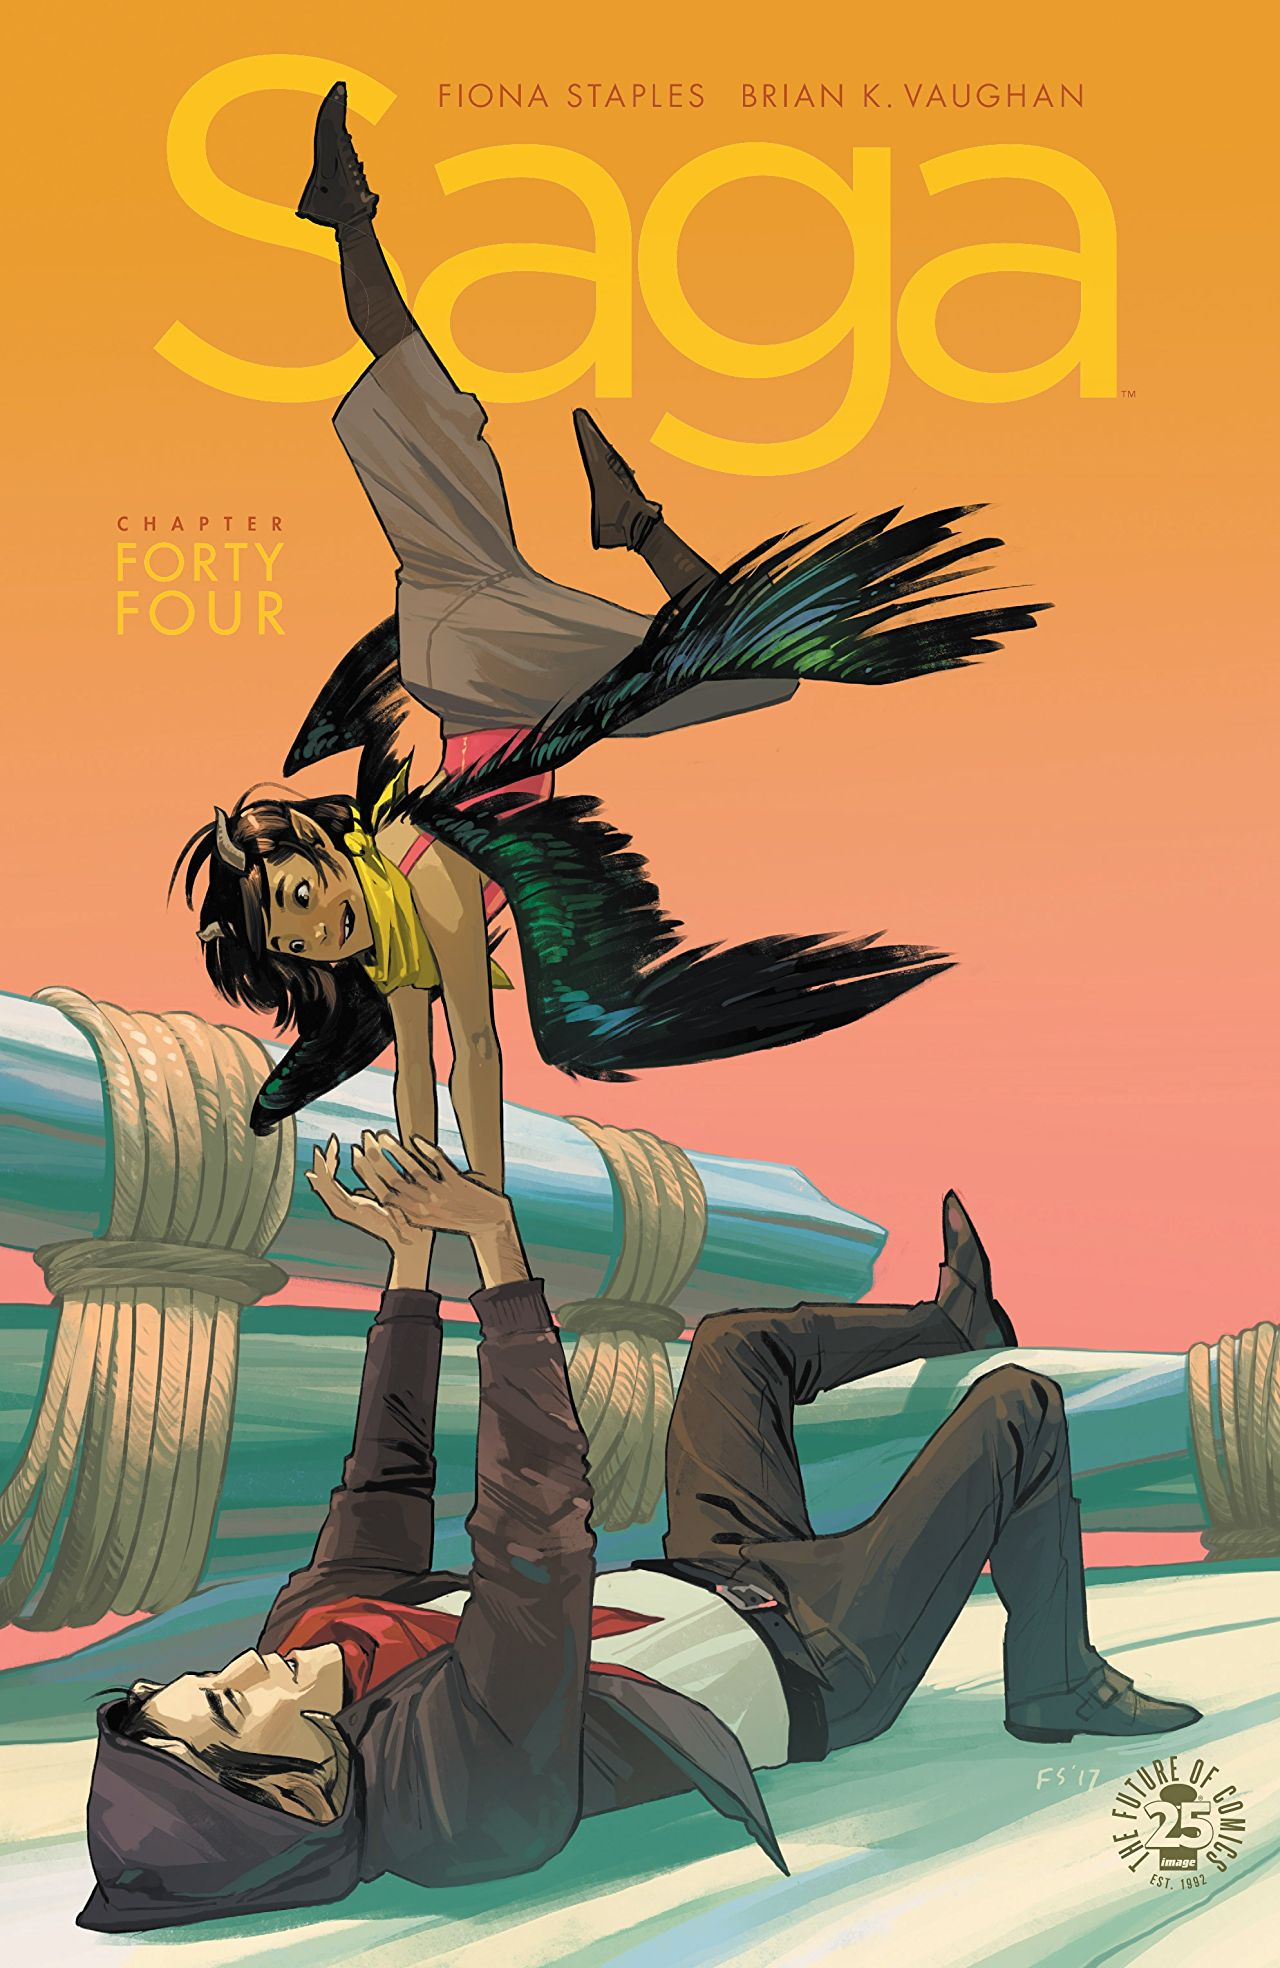 A bird winged young girl poses acrobatically in the arms of an older man who is pushing her up from the ground. This is the cover for Saga.